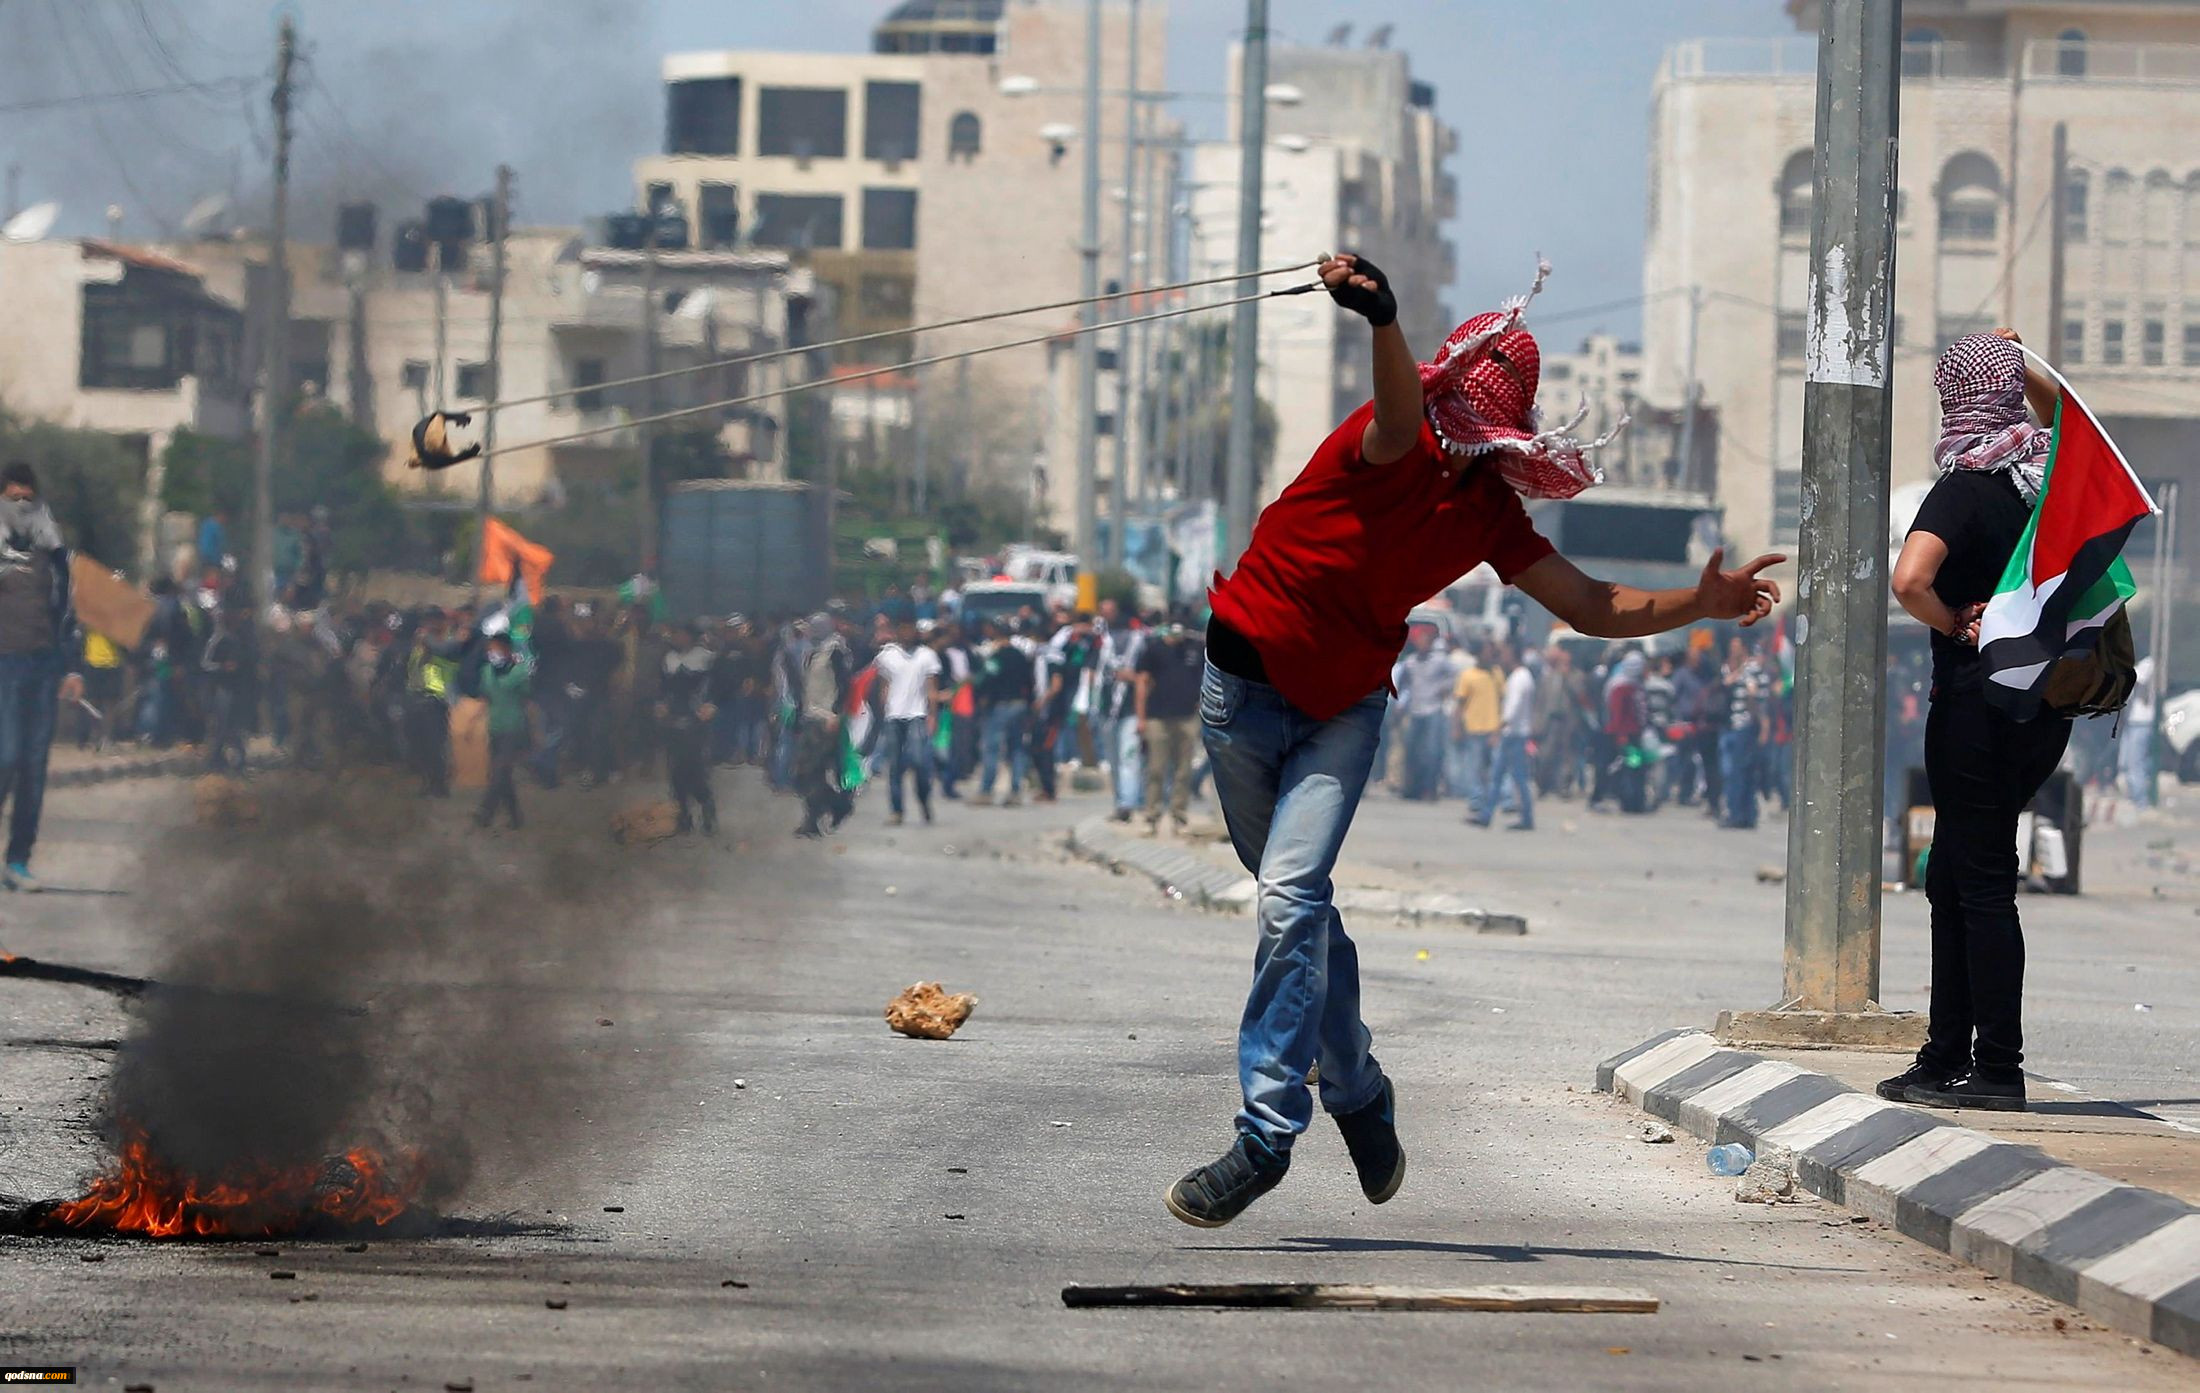 Death of any inmate would spark intifada